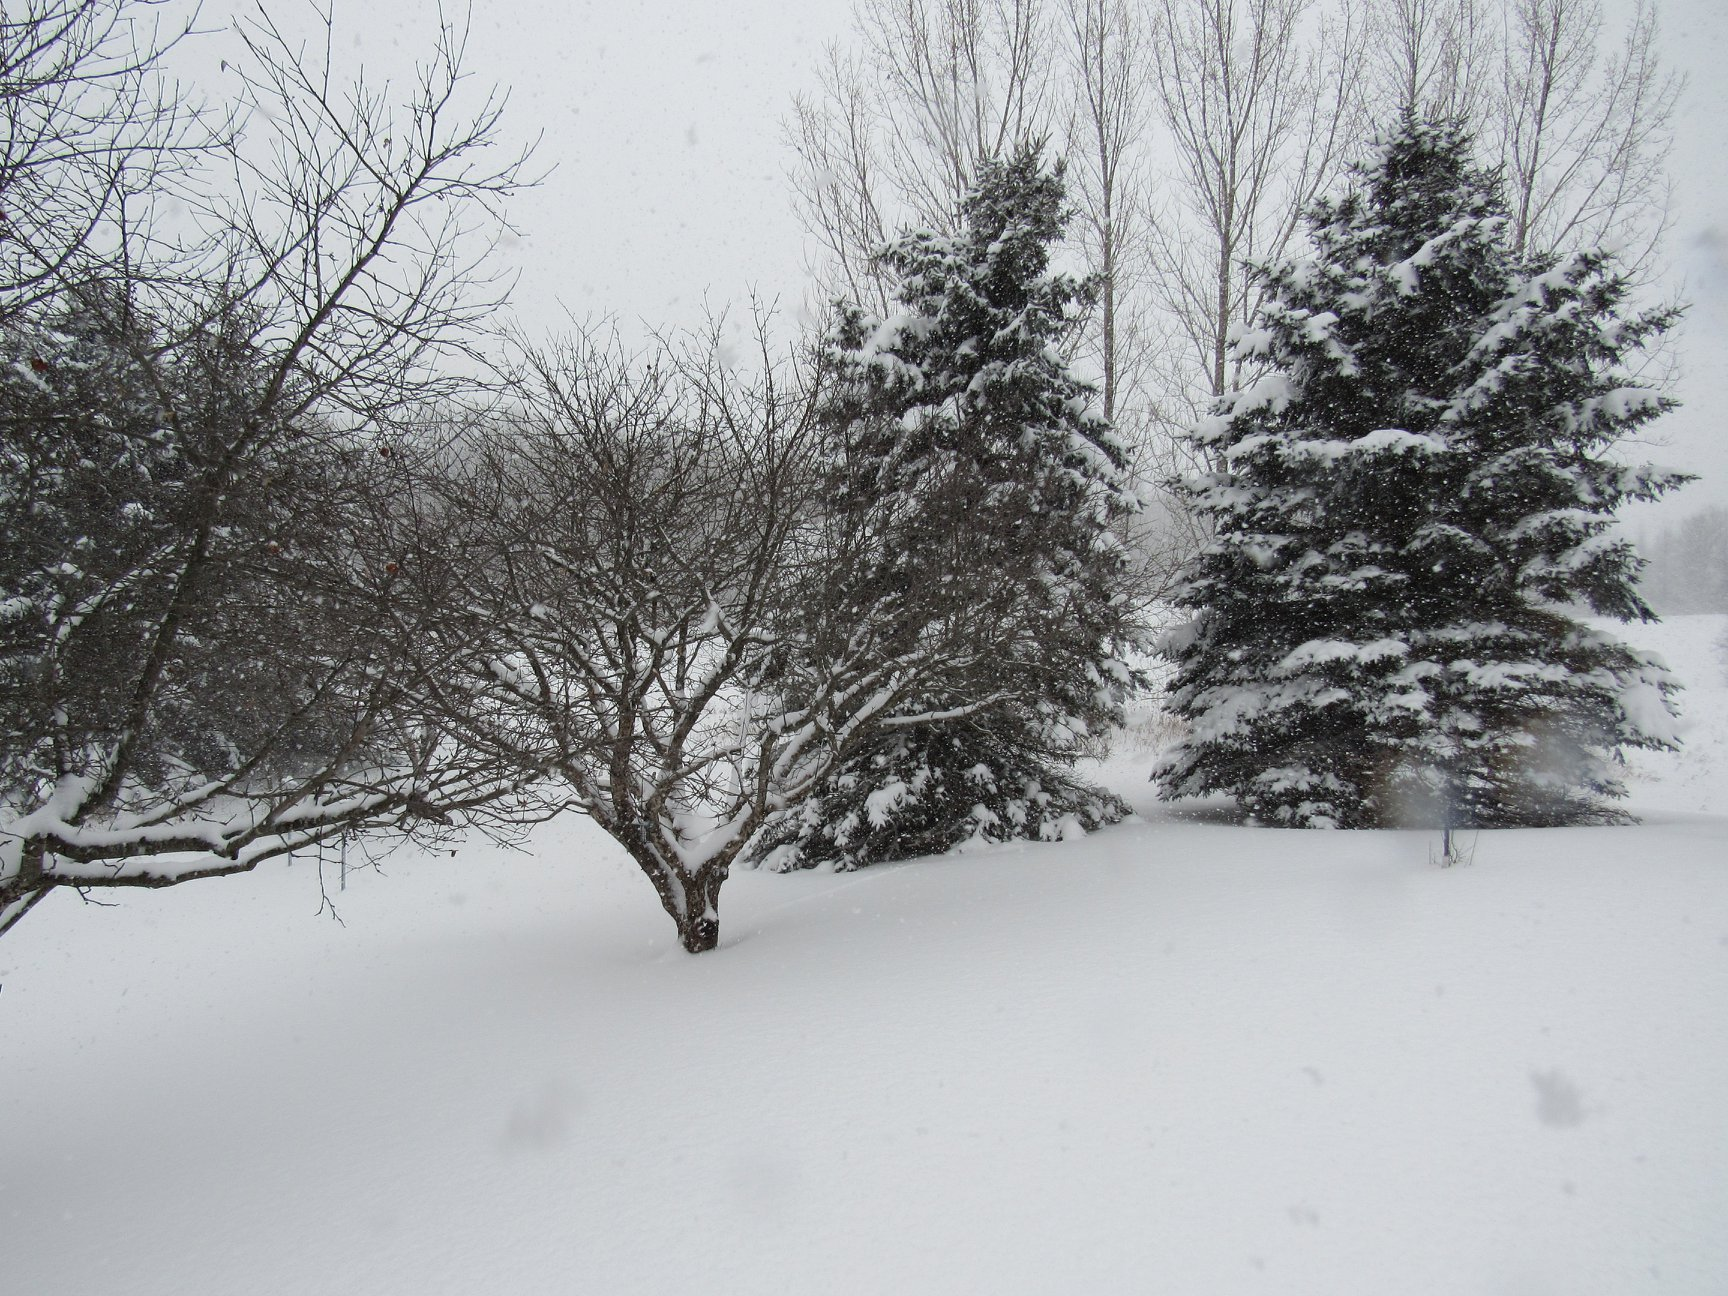 Our trees look shorter but they are overpowered by the snow depth.